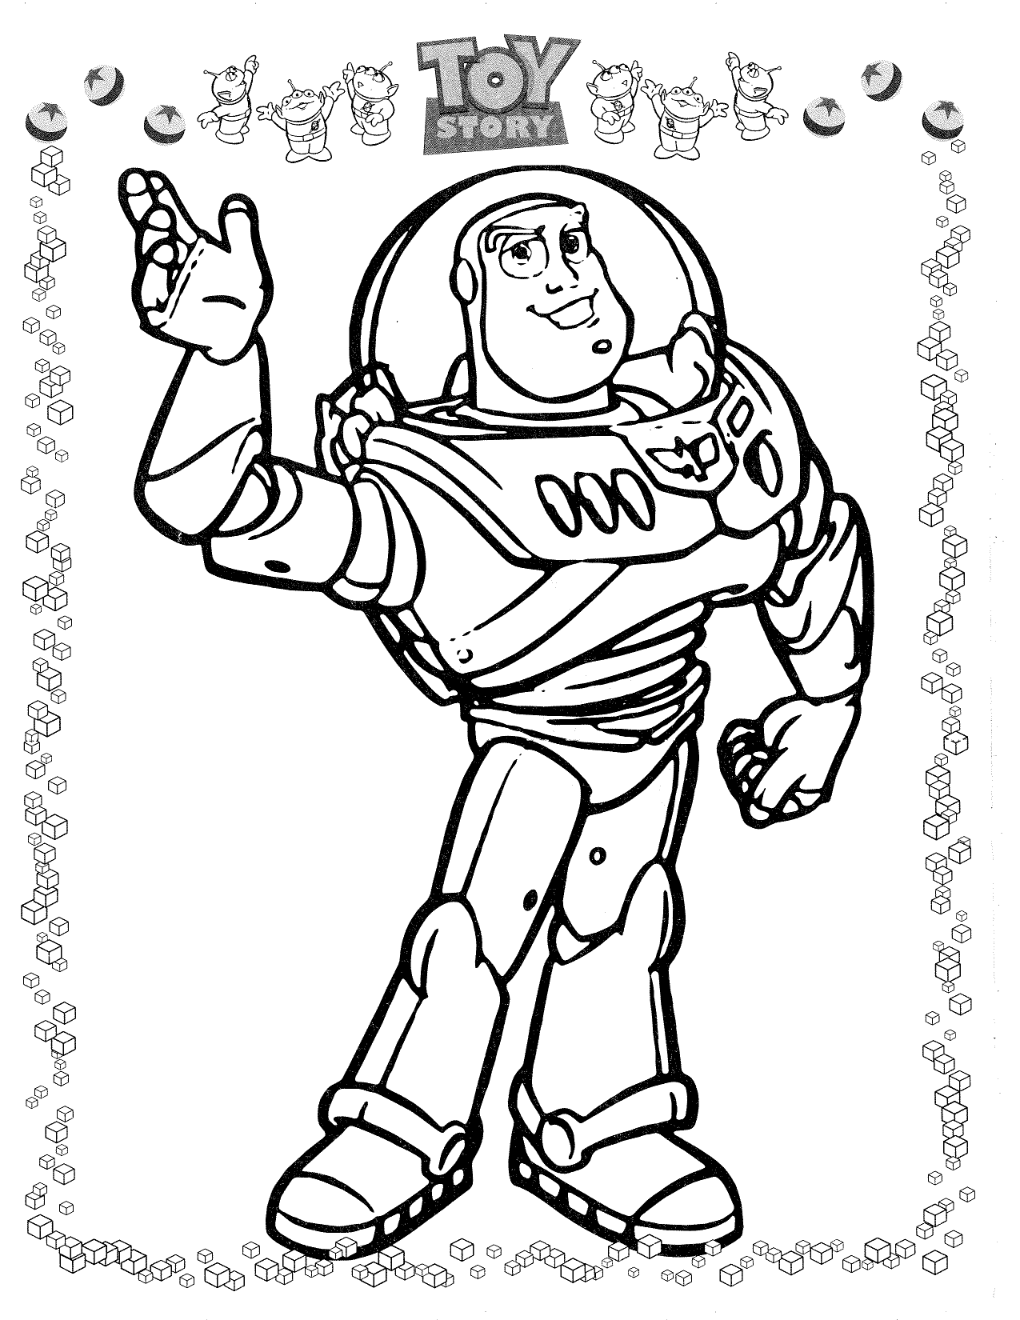 buzz toy story 4 coloring pages buzz is ready for rescue in toy story coloring page 4 coloring toy buzz pages story